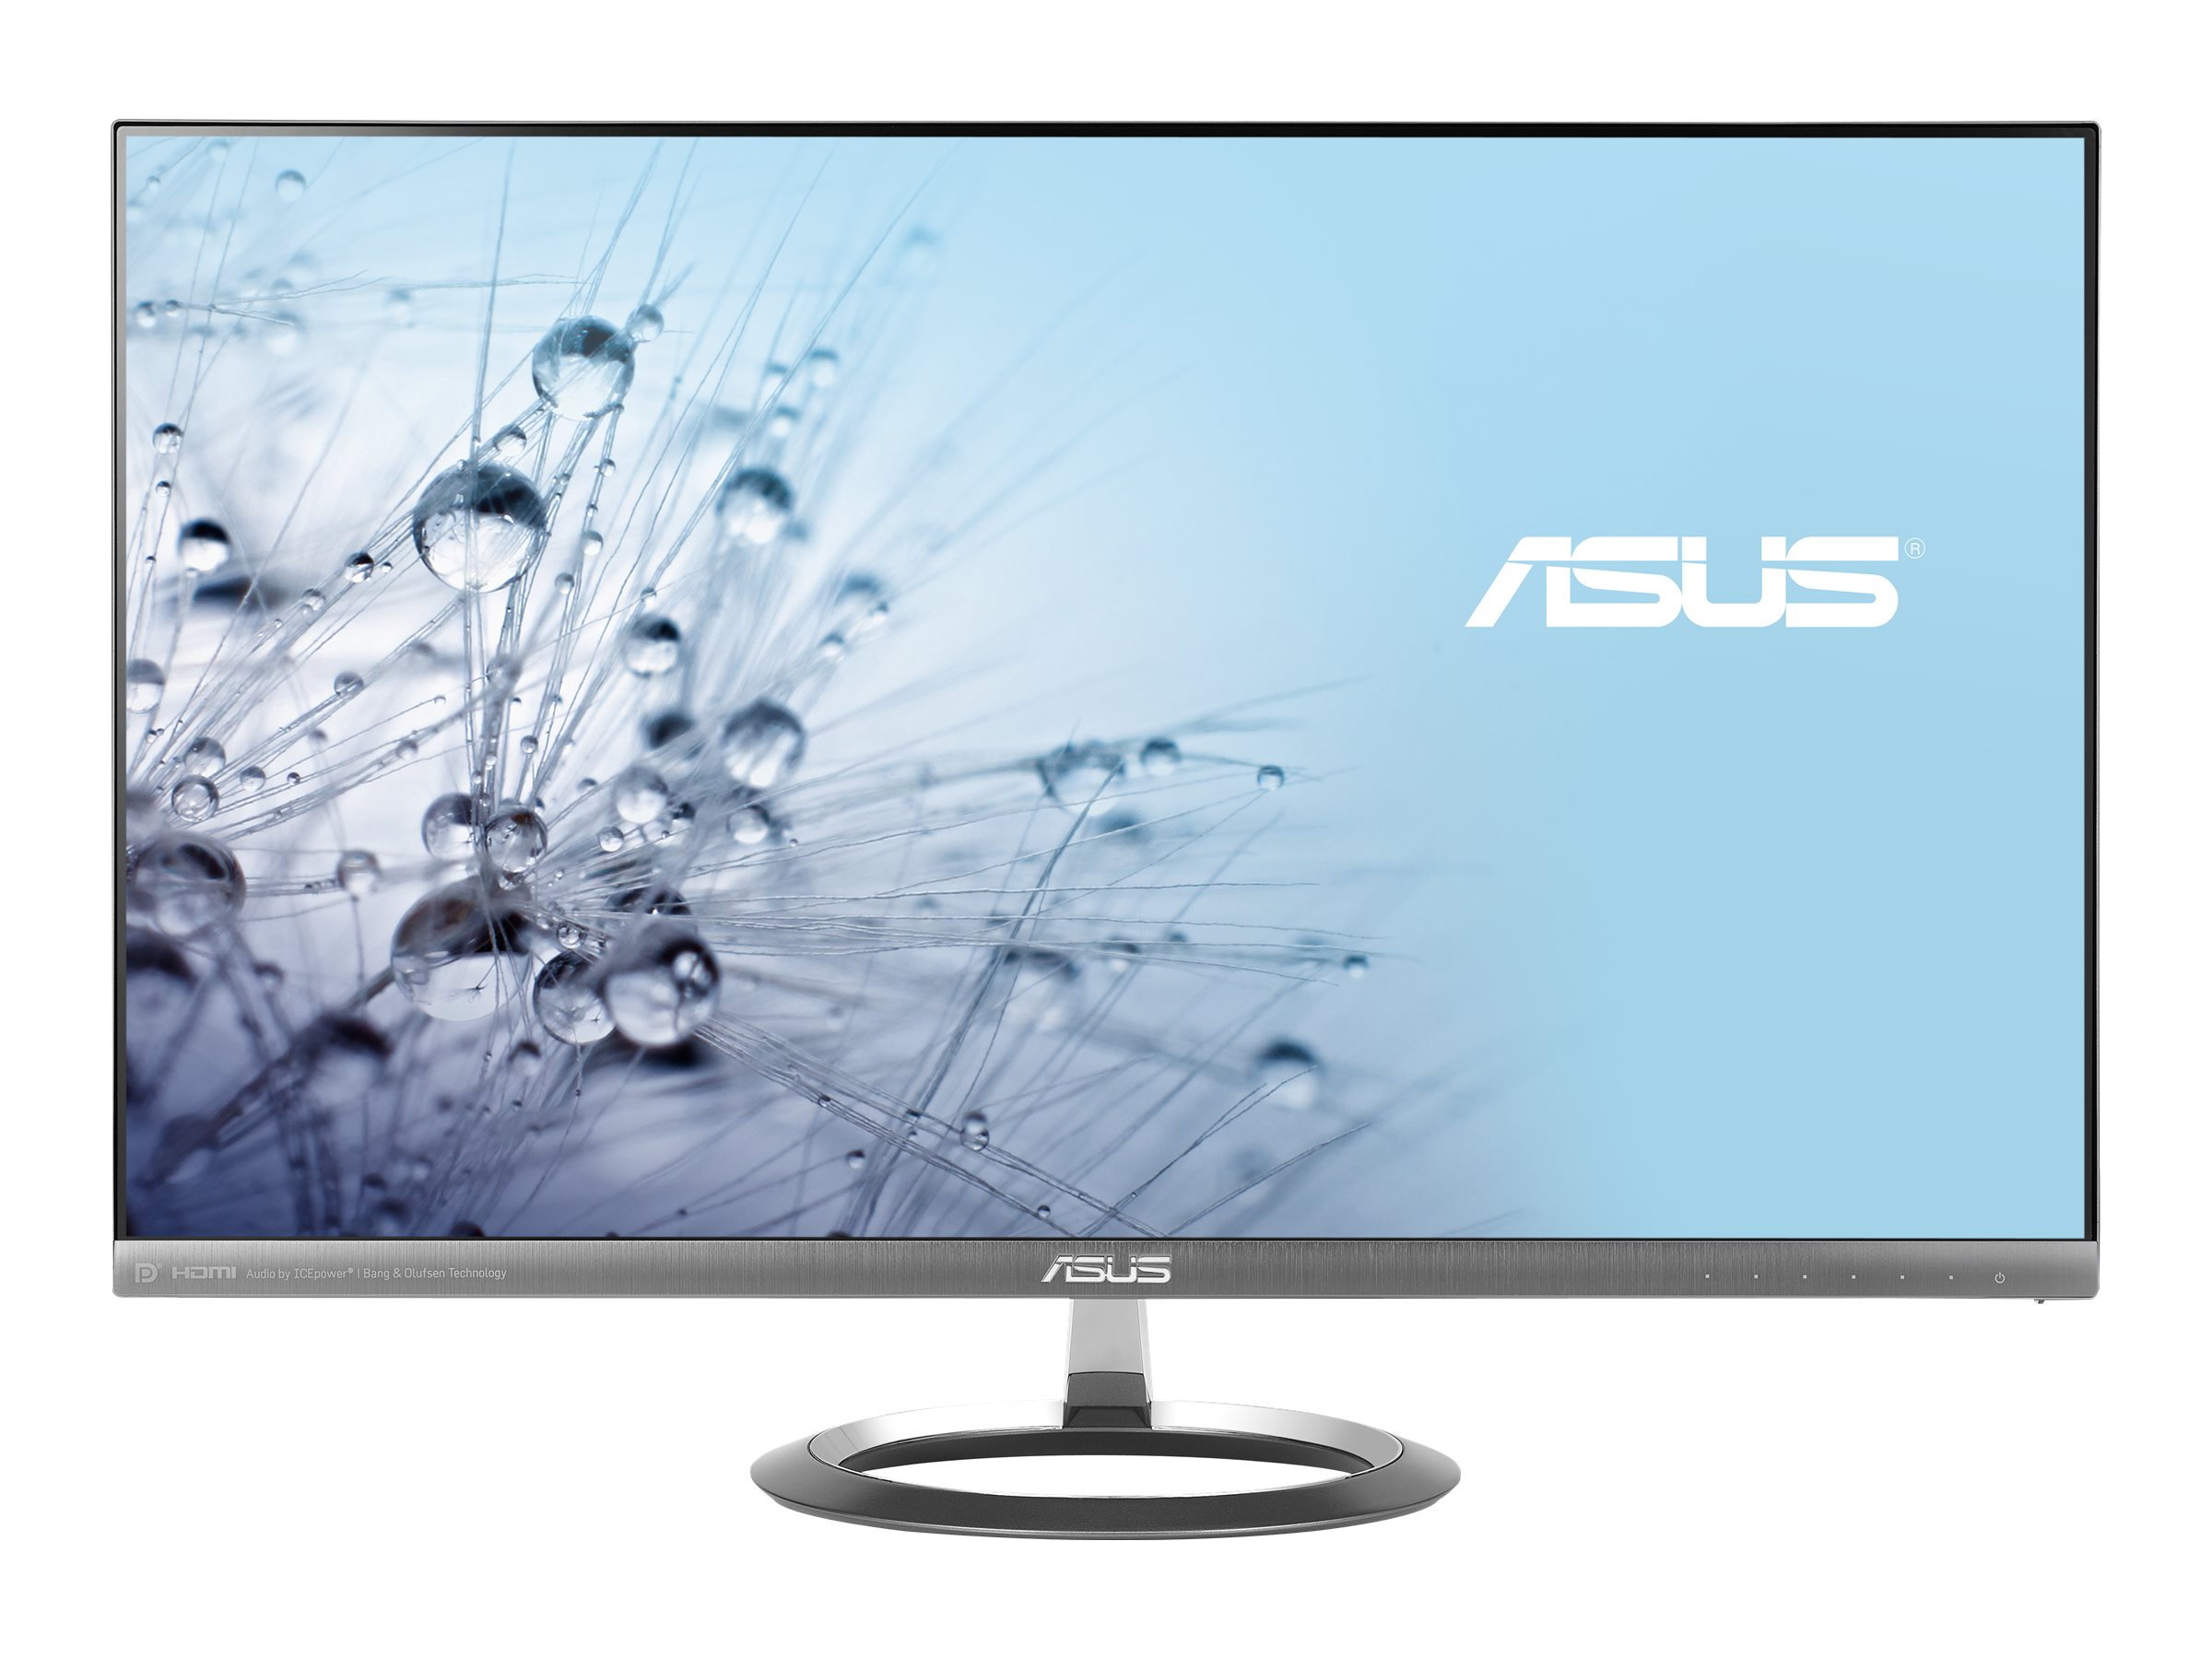 Asus 27 MX27AQ WQHD LED-LCD Monitor, Space Gray Black